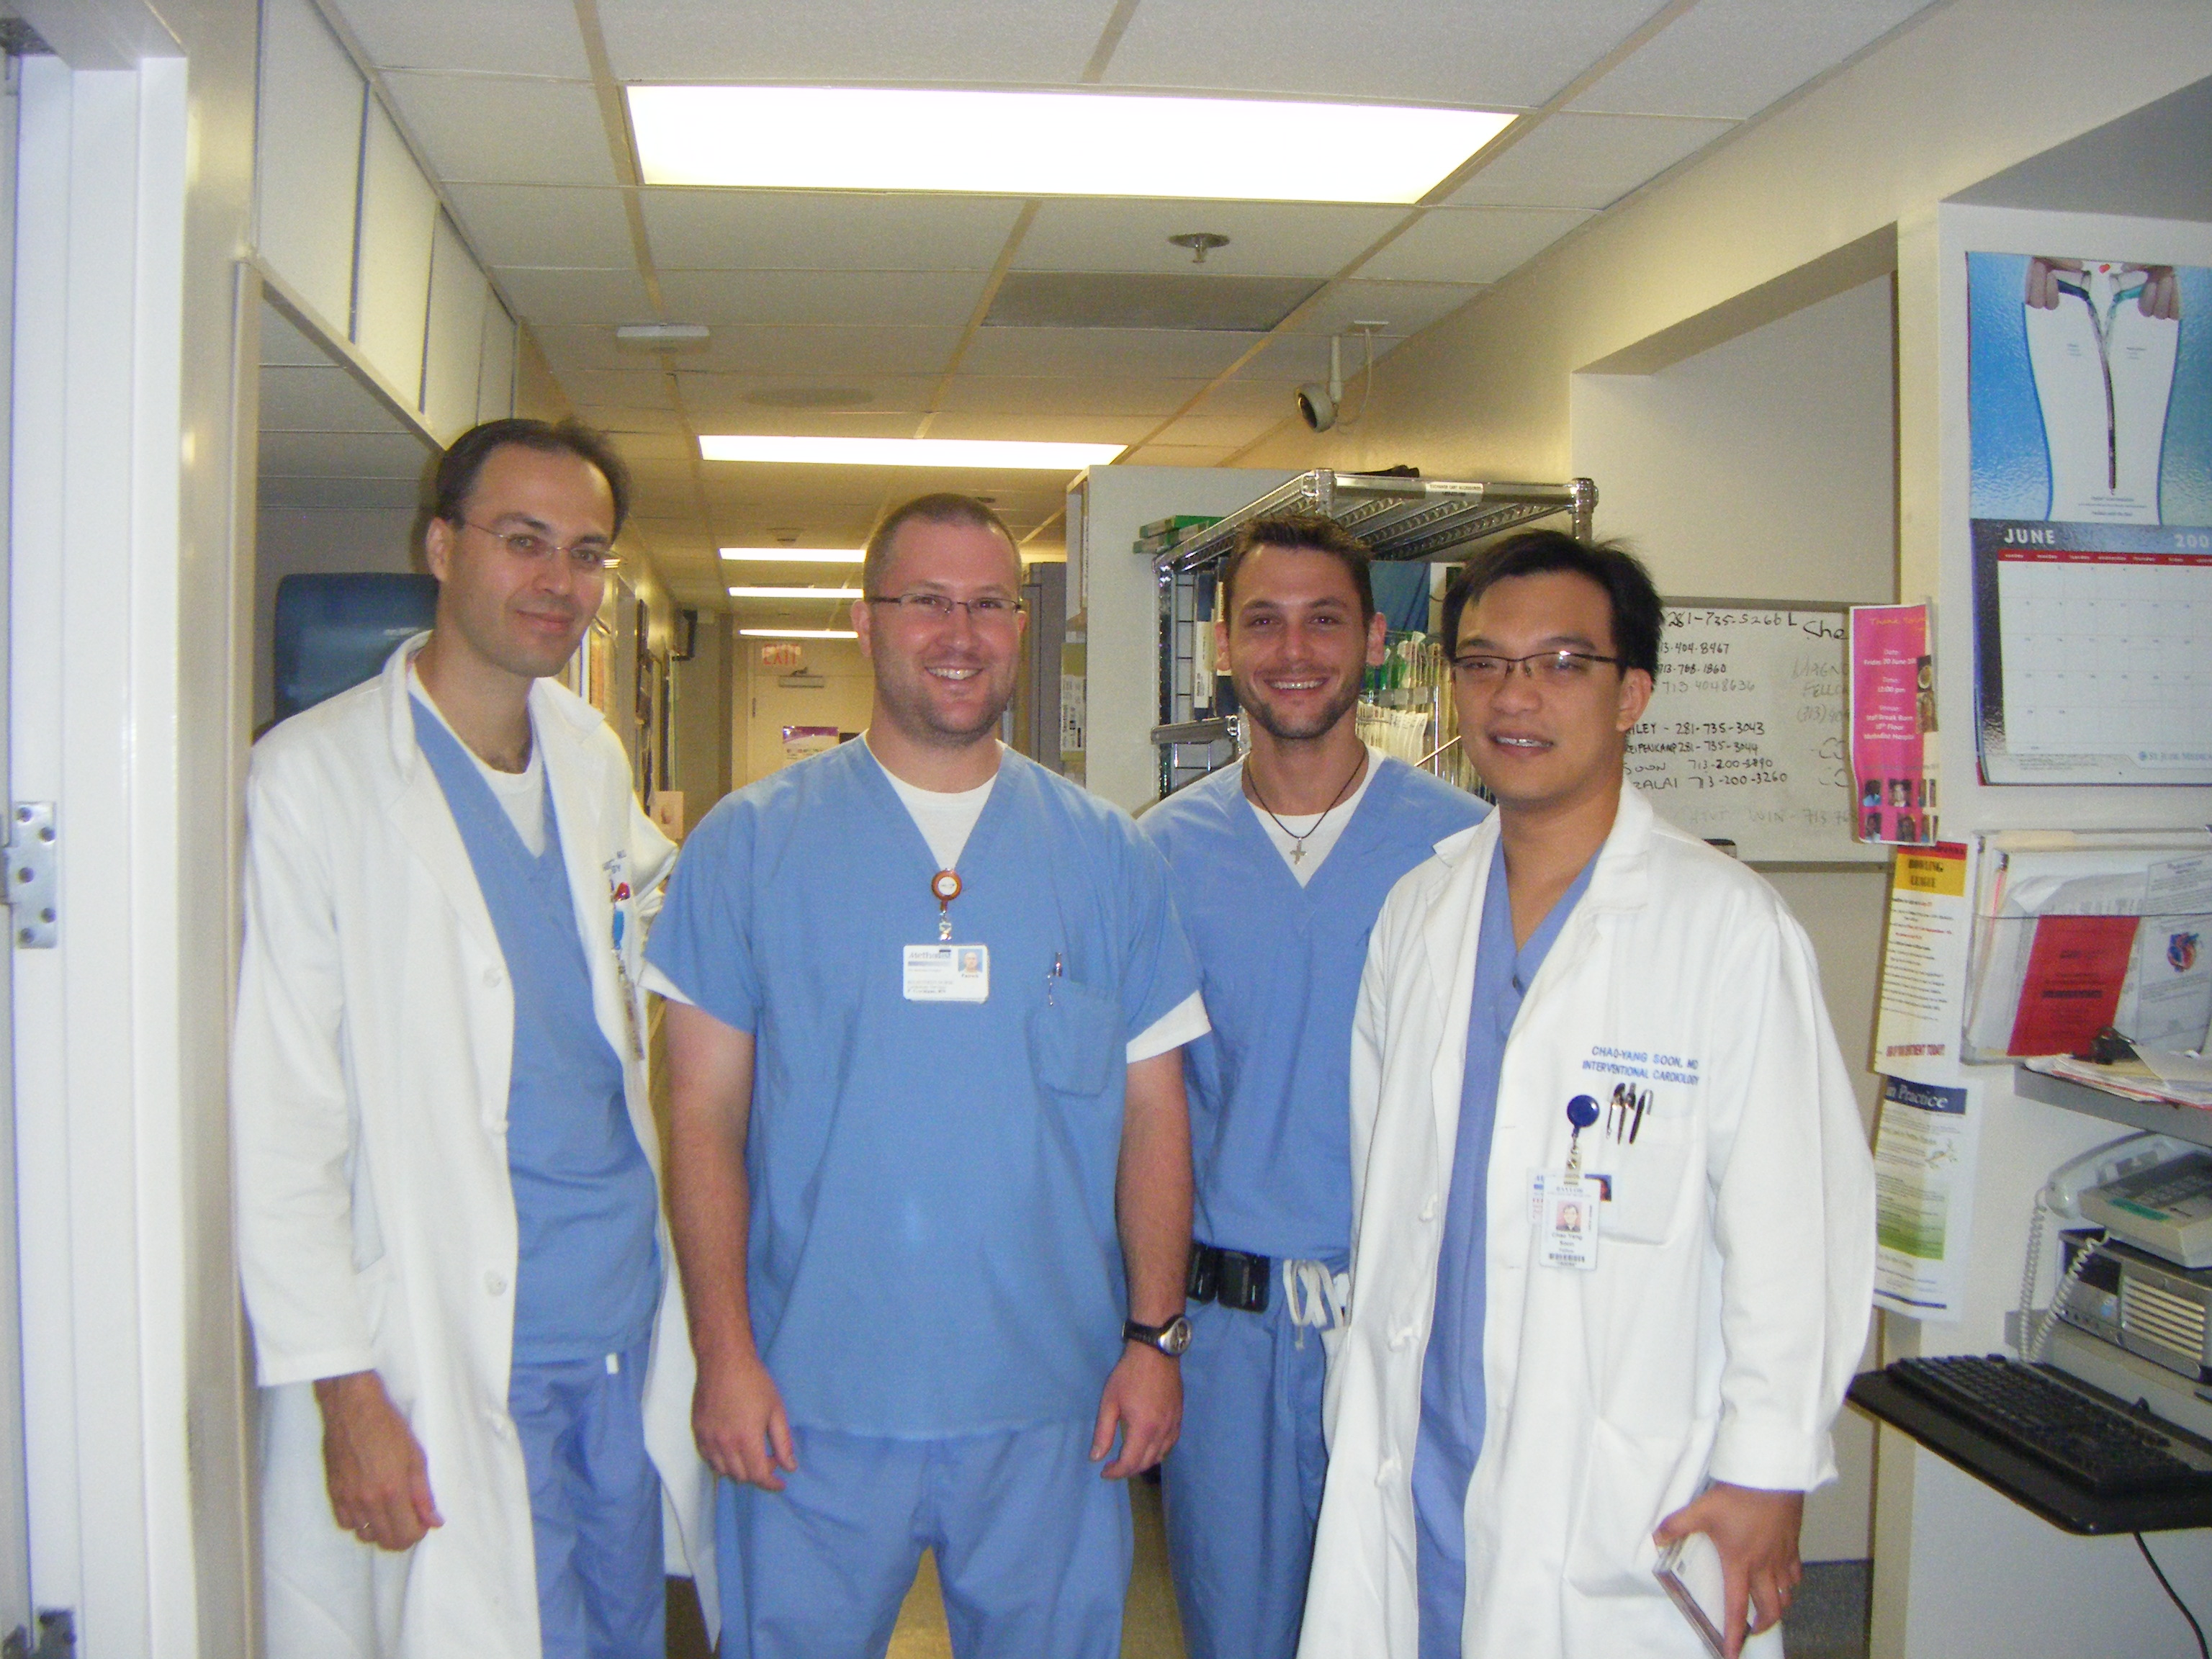 Dr Soon Chao Yang |The Heart Doctors